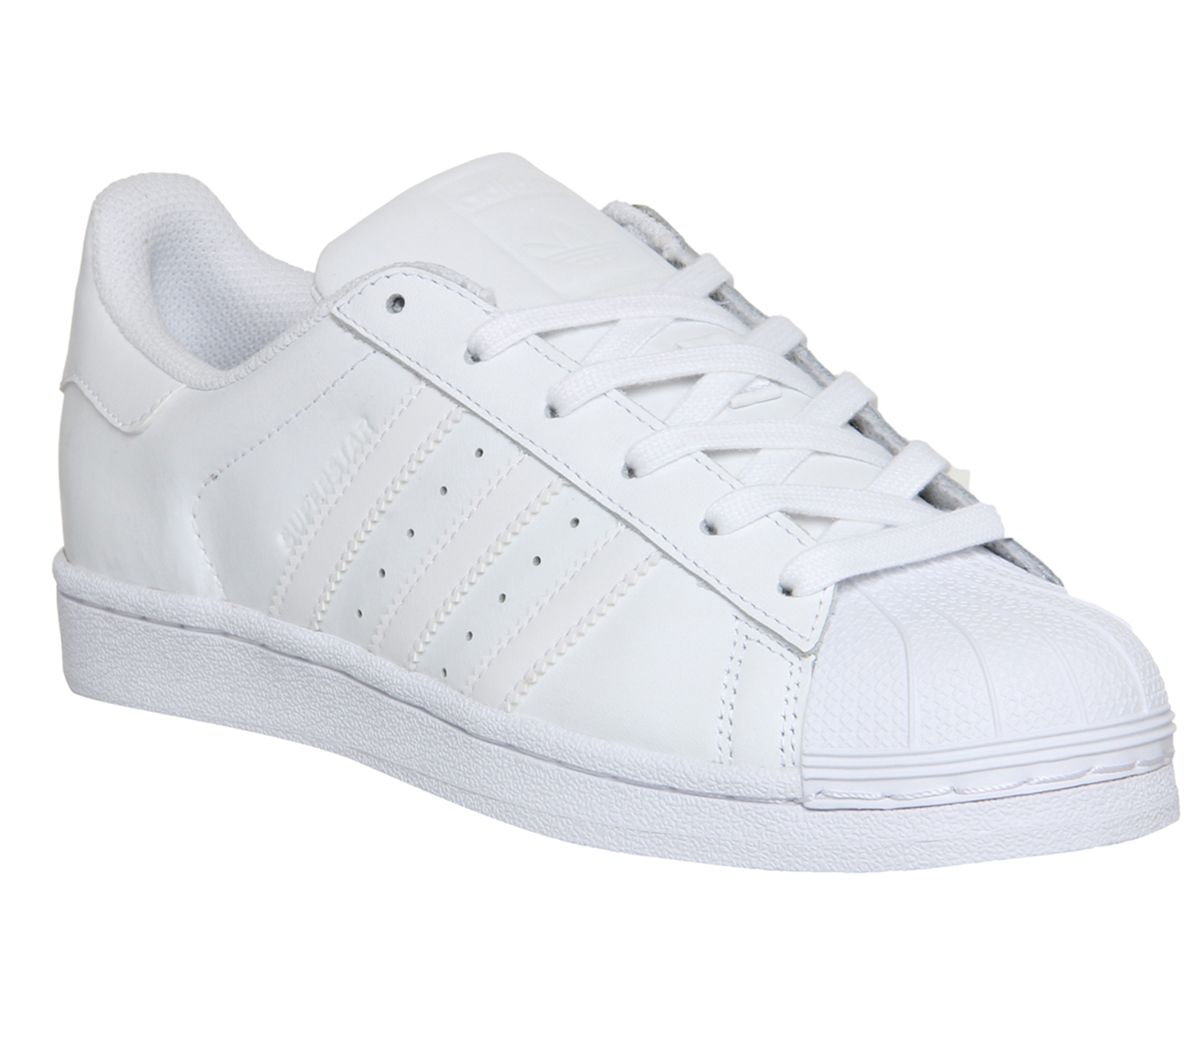 5334bd676ff adidas Superstar Trainers White Mono Foundation - Kids Trainers